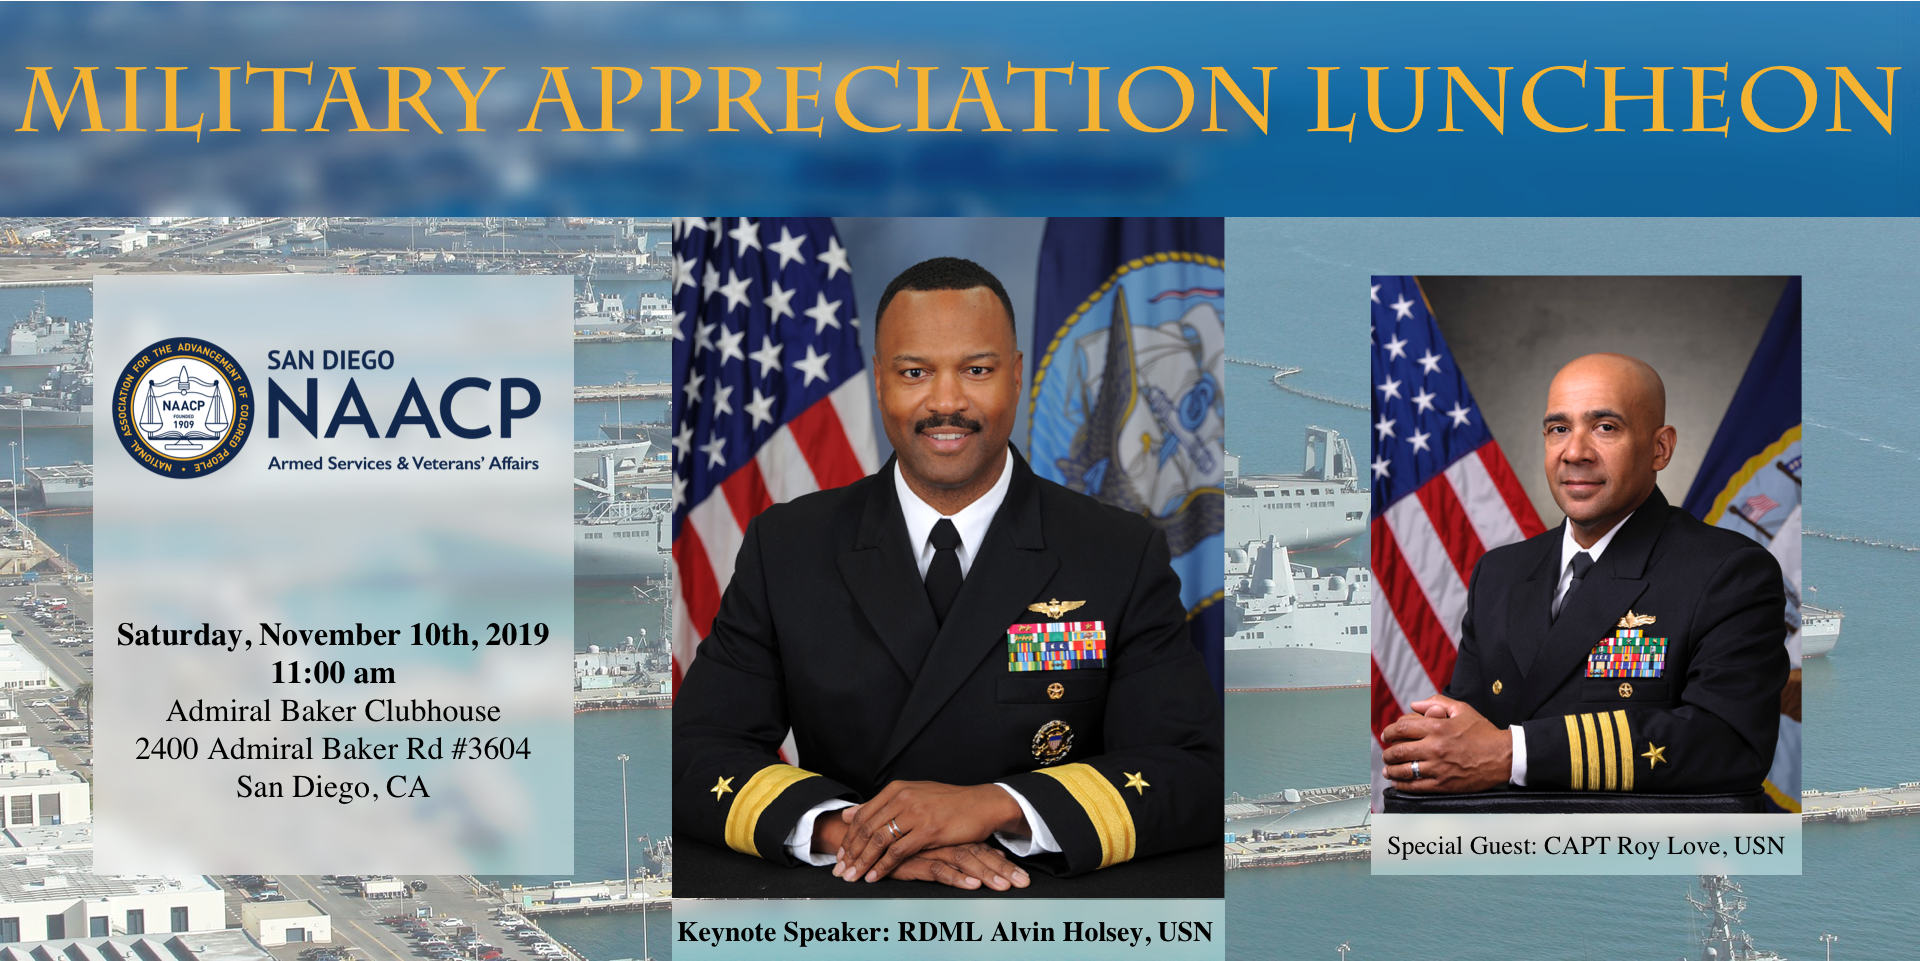 Tickets Now Being Sold for Military Appreciation Luncheon